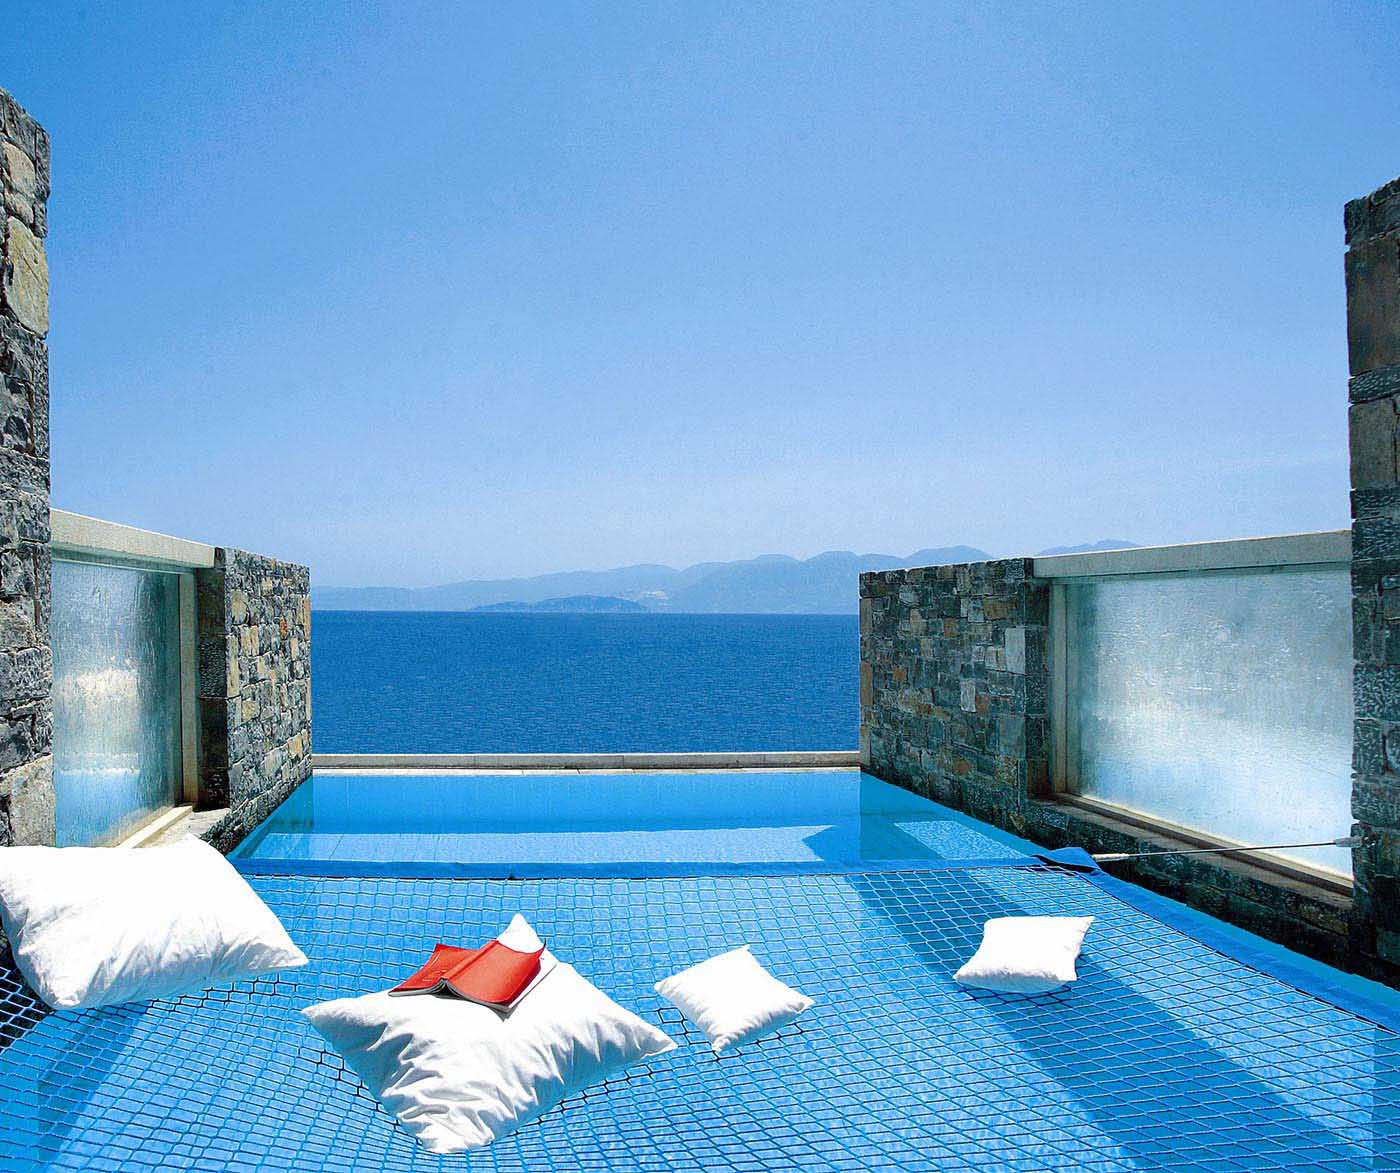 Messaria hotels & resorts, 50% discount for early bookings, Messaria, Santorini, Cyclades Islands, Greece